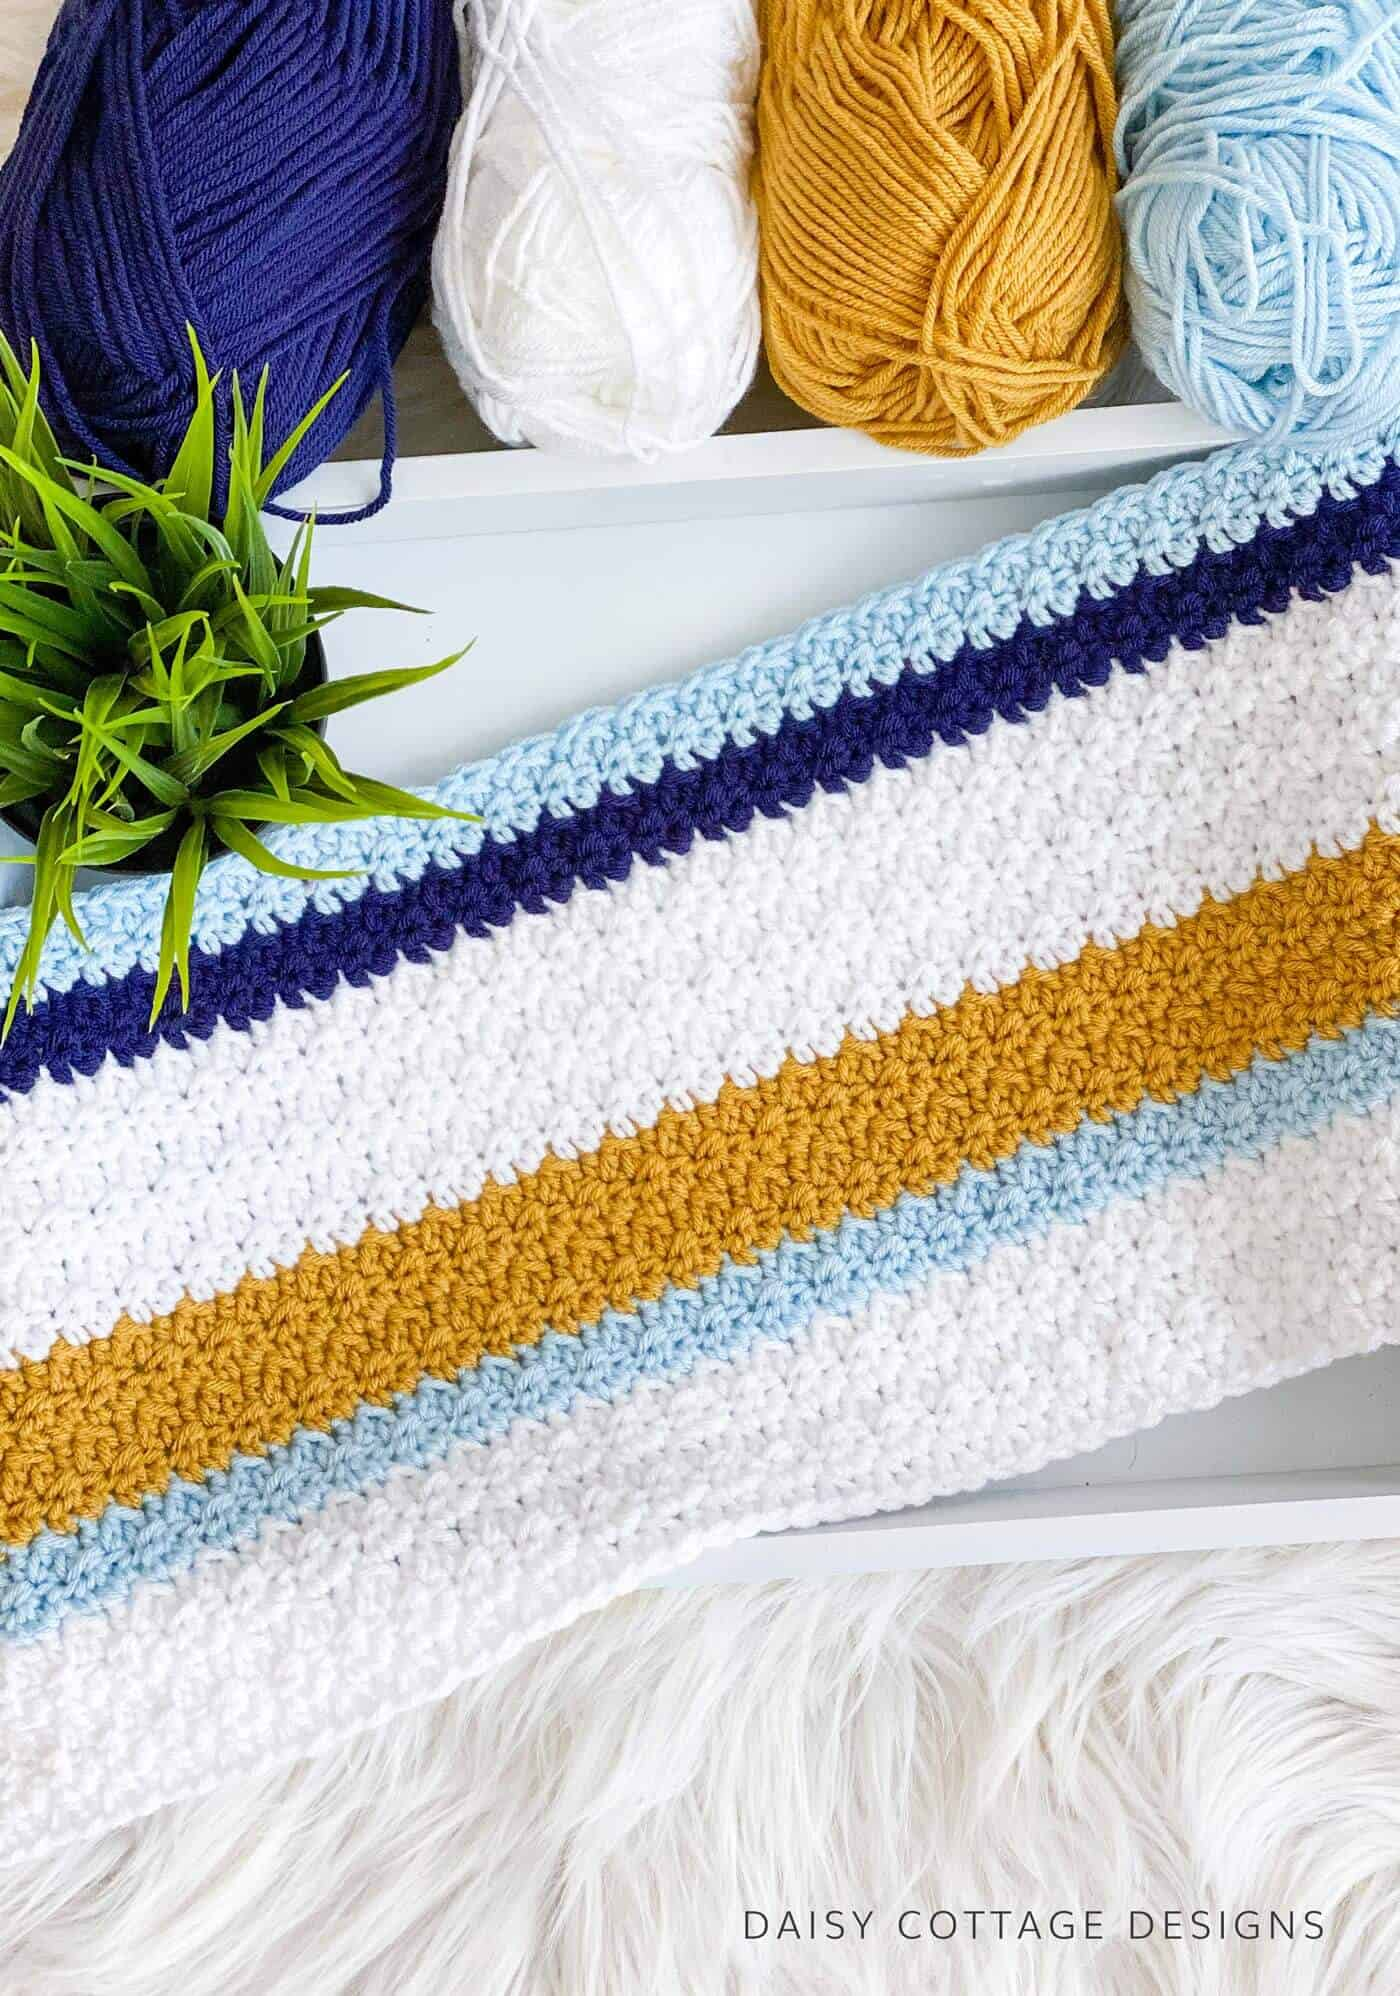 Modern Crochet Blanket Pattern Daisy Cottage Designs